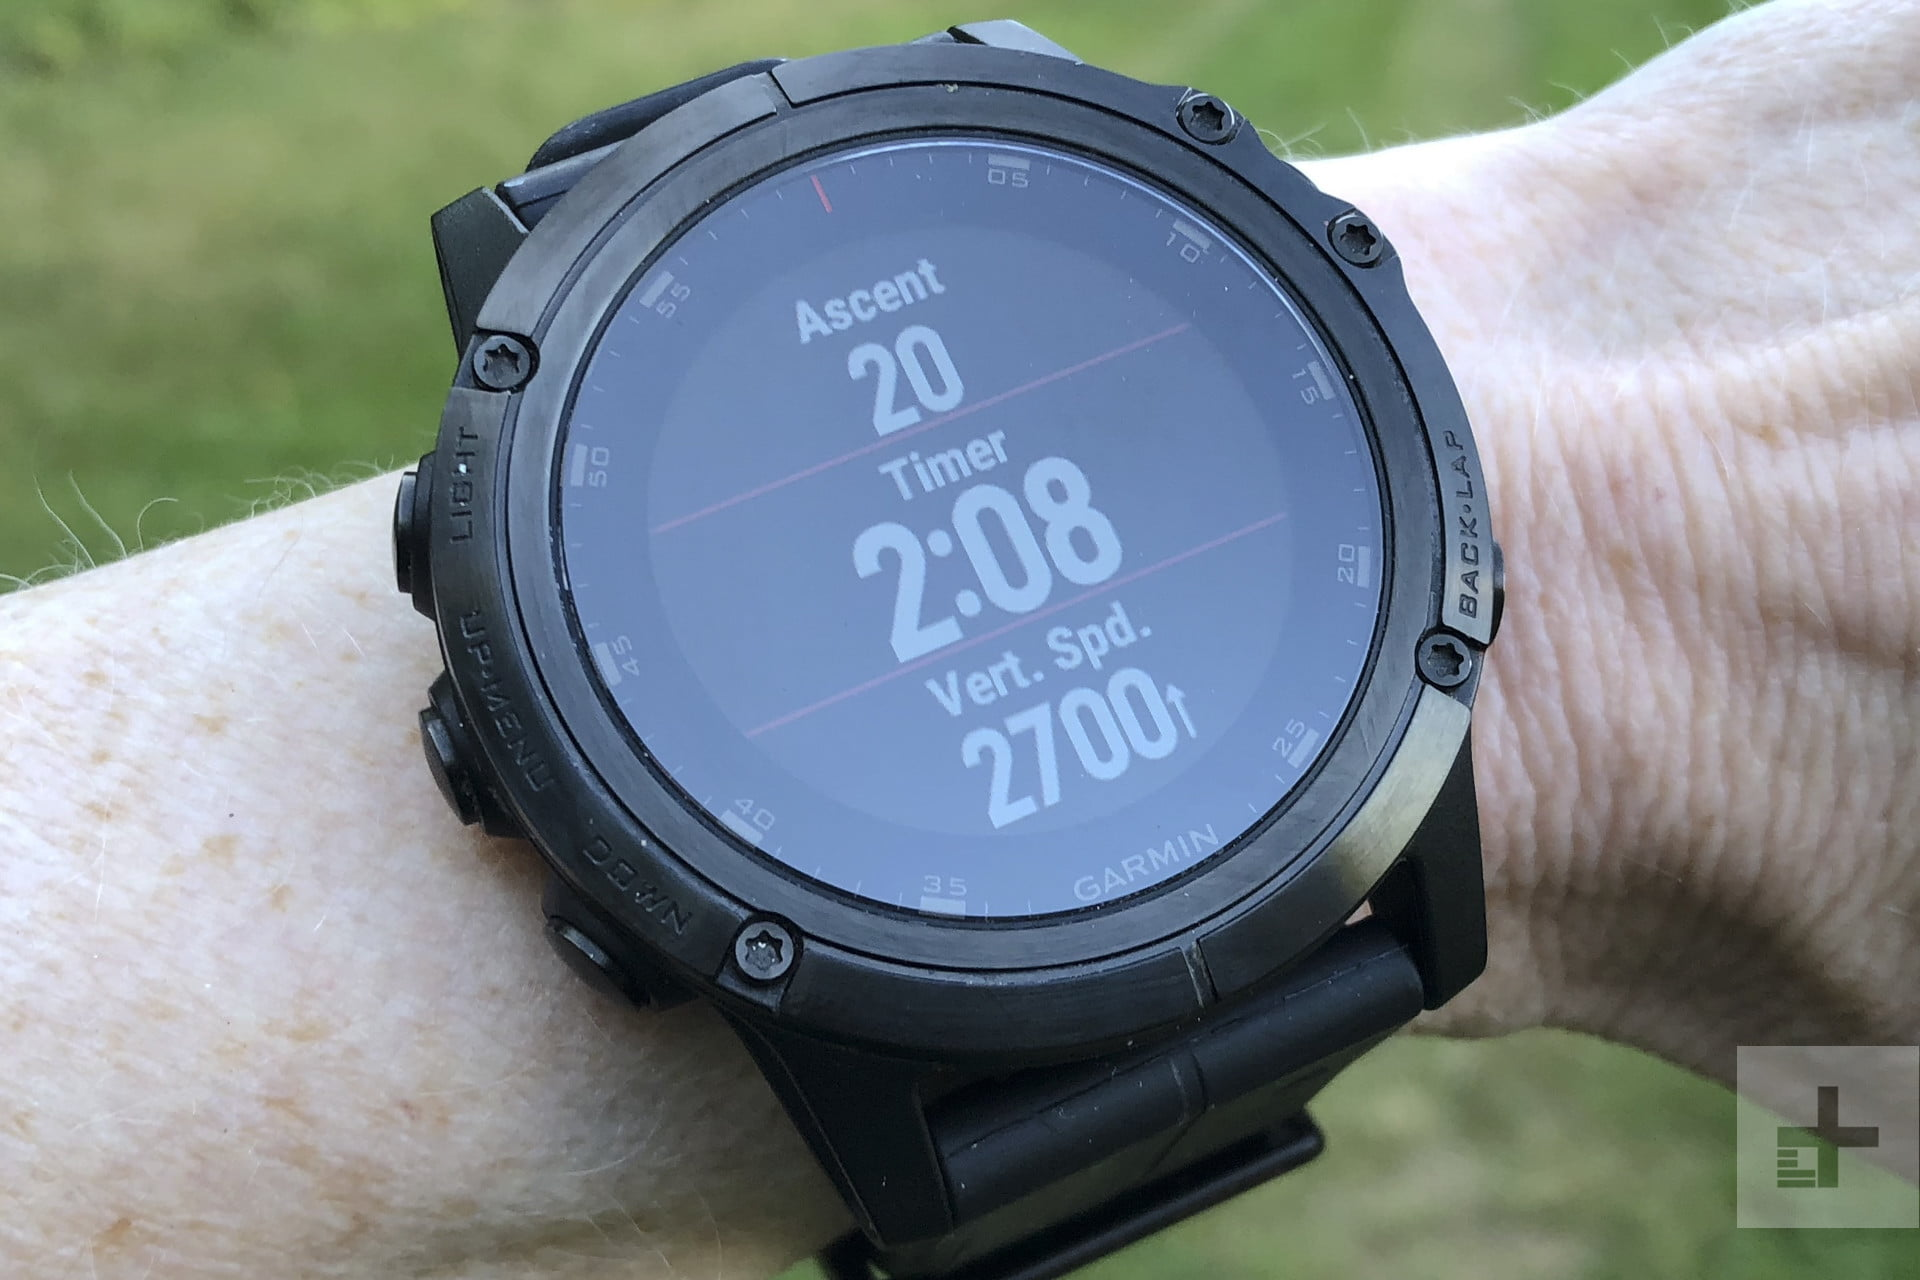 REI Sale Discounts Garmin and Fitbit Smartwatches for the